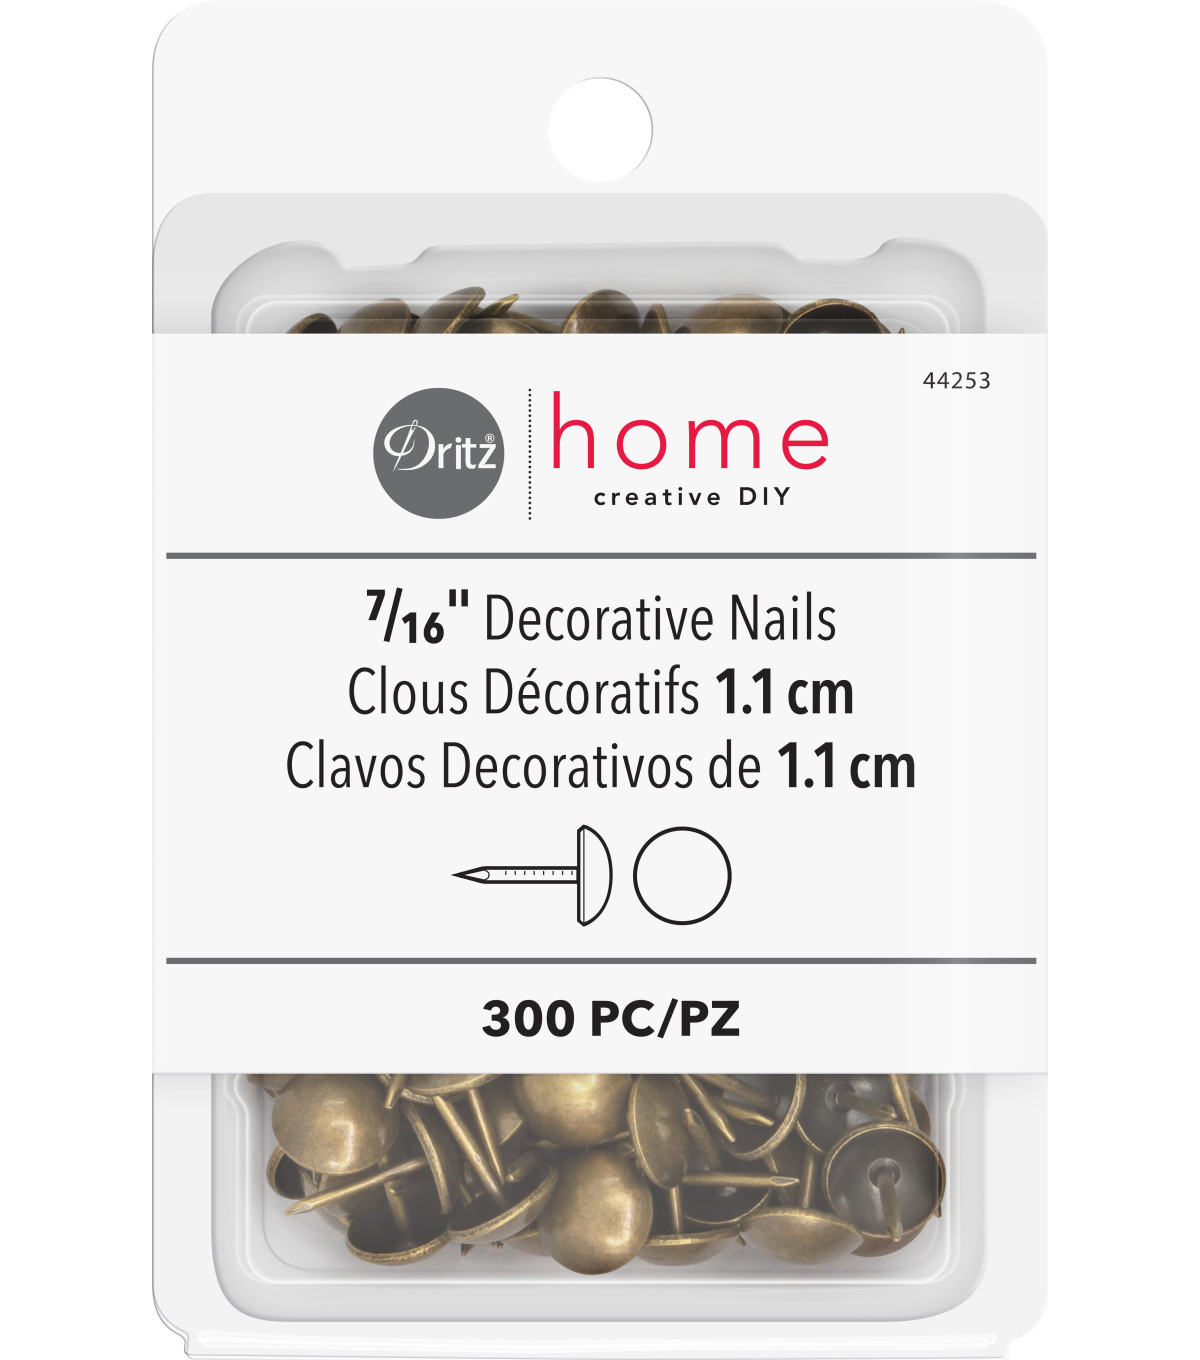 Dritz Home 300pk Decorative Nails-Antique Brass